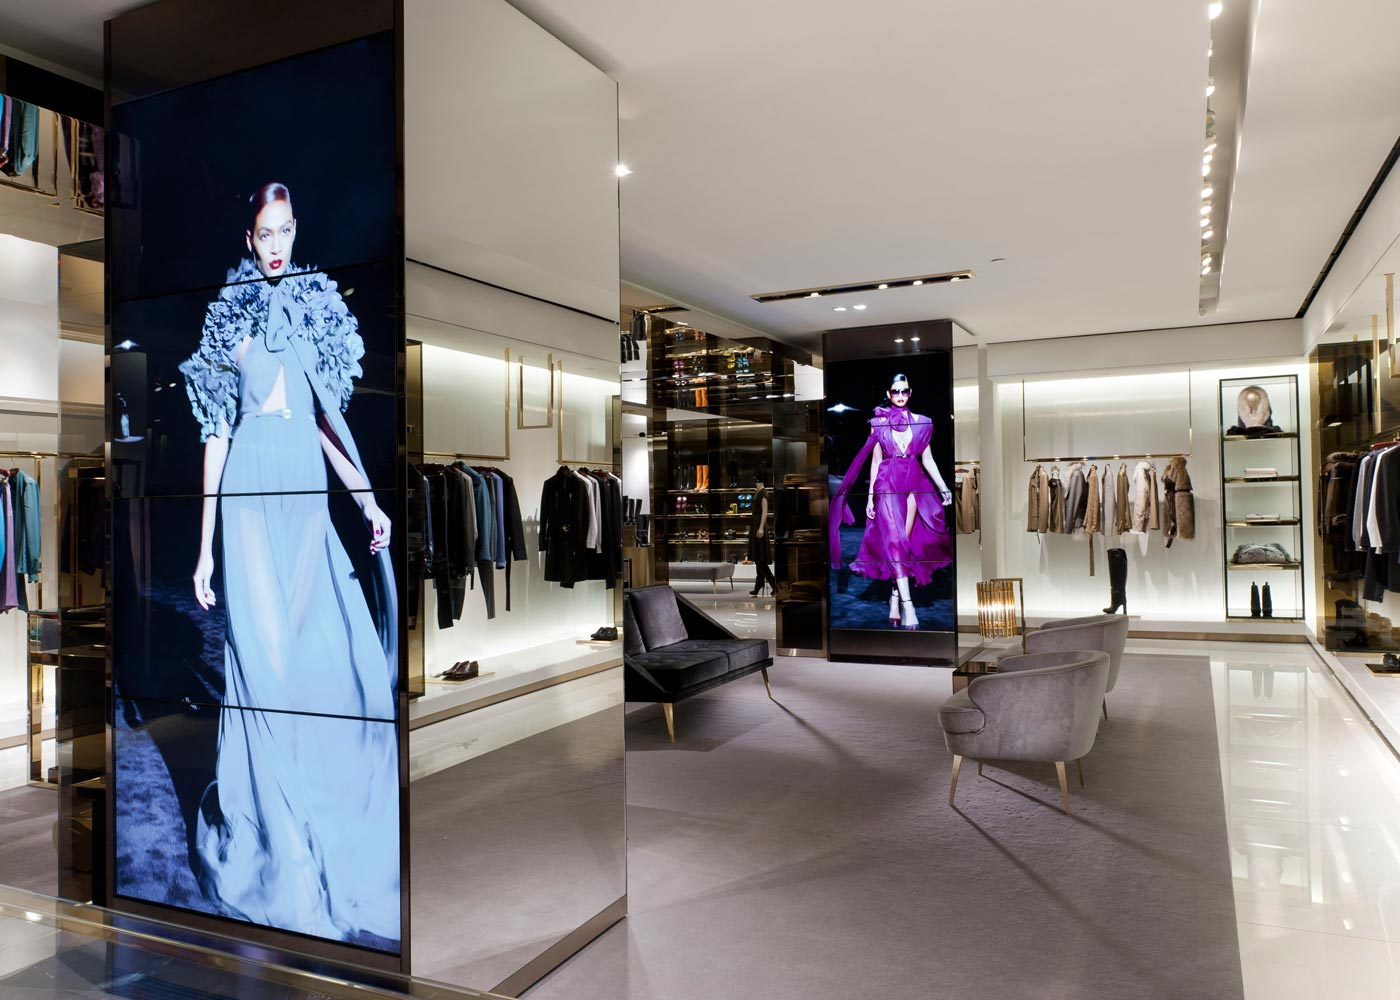 Video Walls In Retail Store